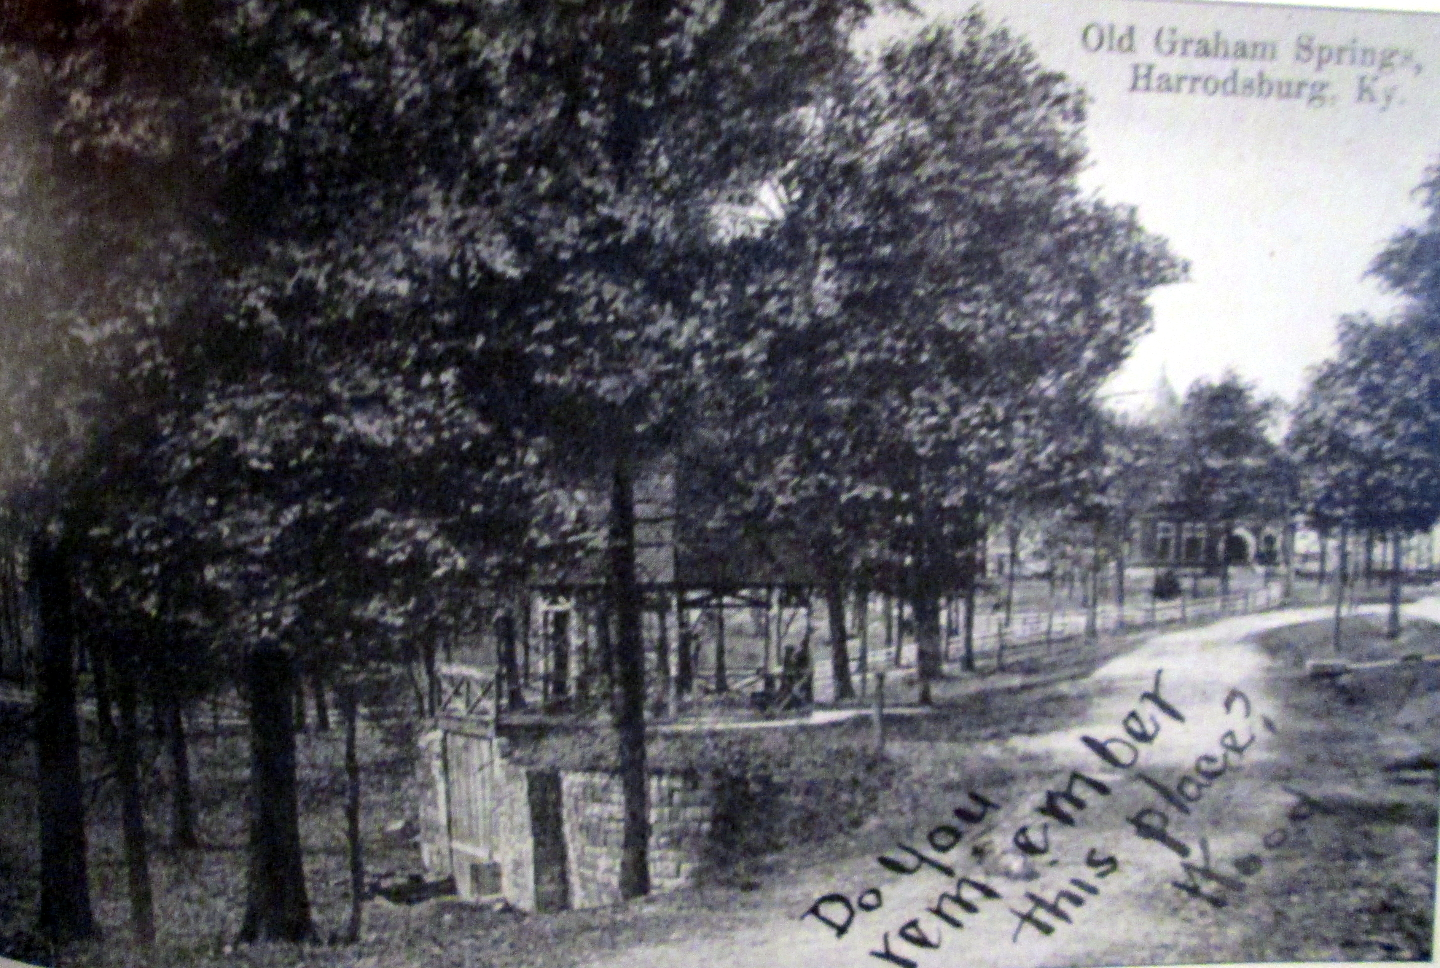 Postcard showing a view of the Graham Springs grounds with the springhouse in the foreground and the hotel visible through the tree line to the upper right (image from Armstrong 2013:81).